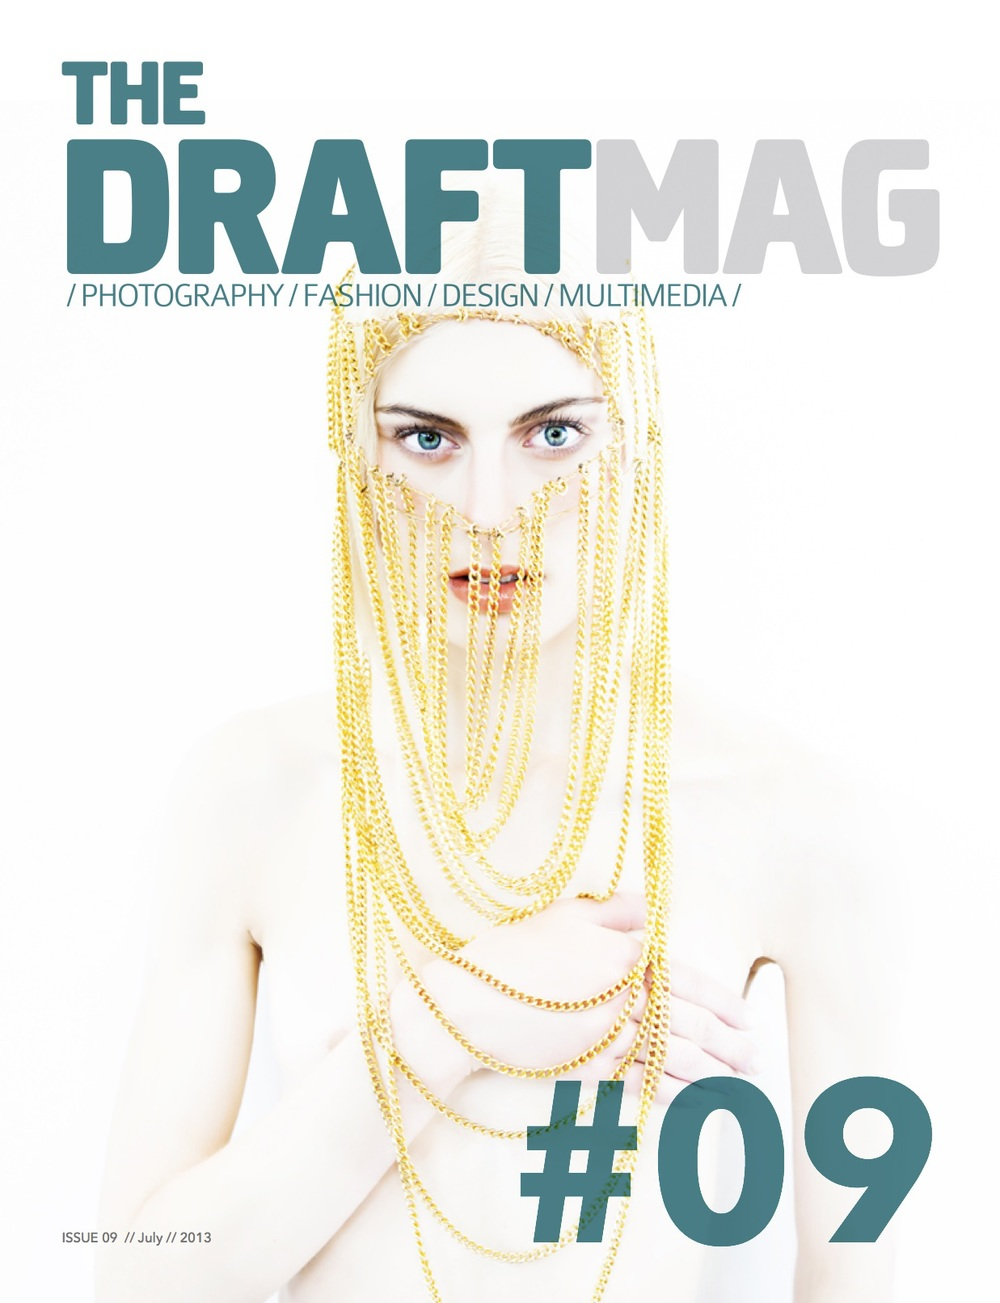 The Draft Mag Issue #09. Click   here   to see the full issue.